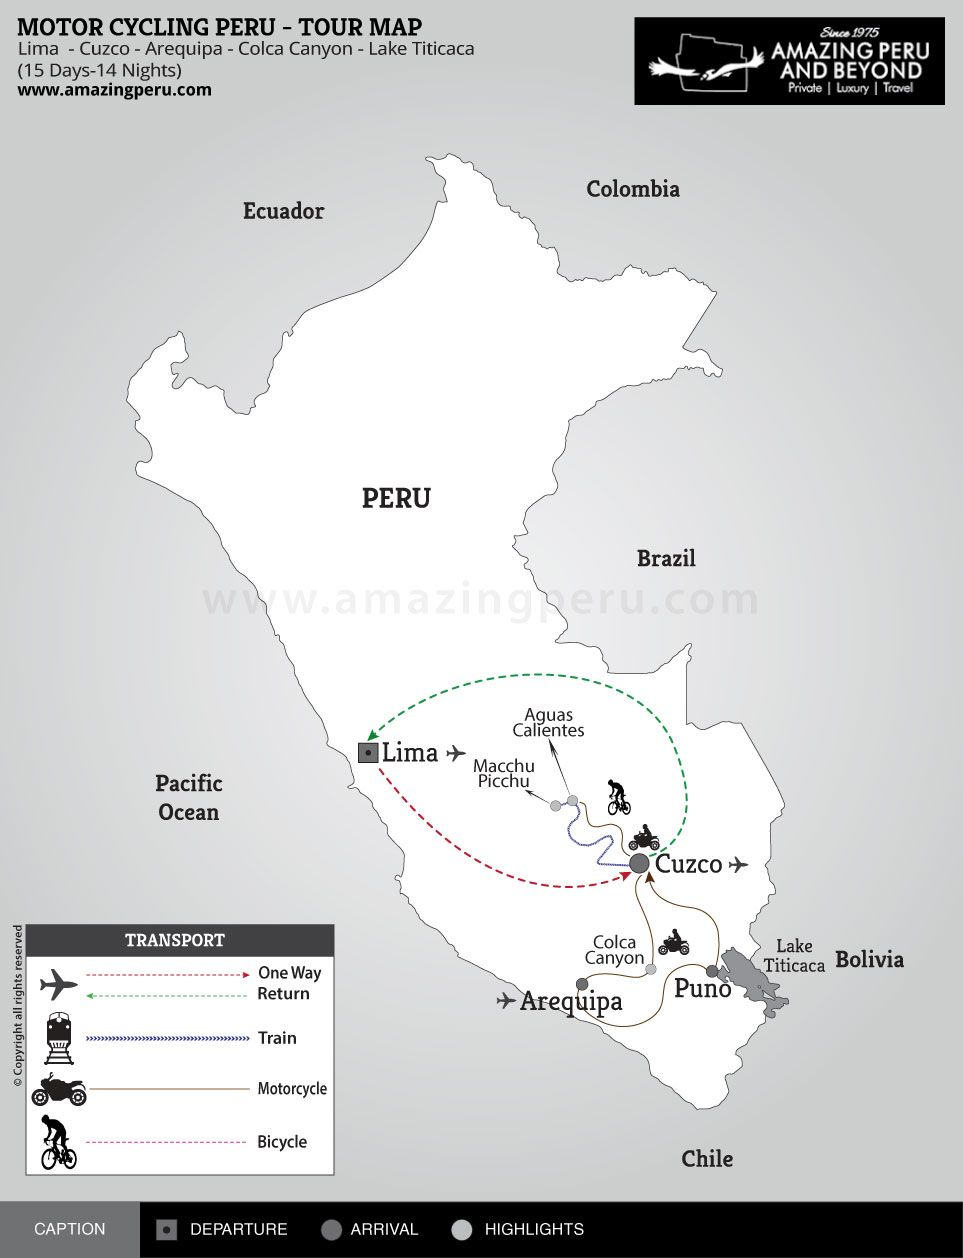 Motor Cycling Tour Around Peru 15 days - 15 days / 14 nights.